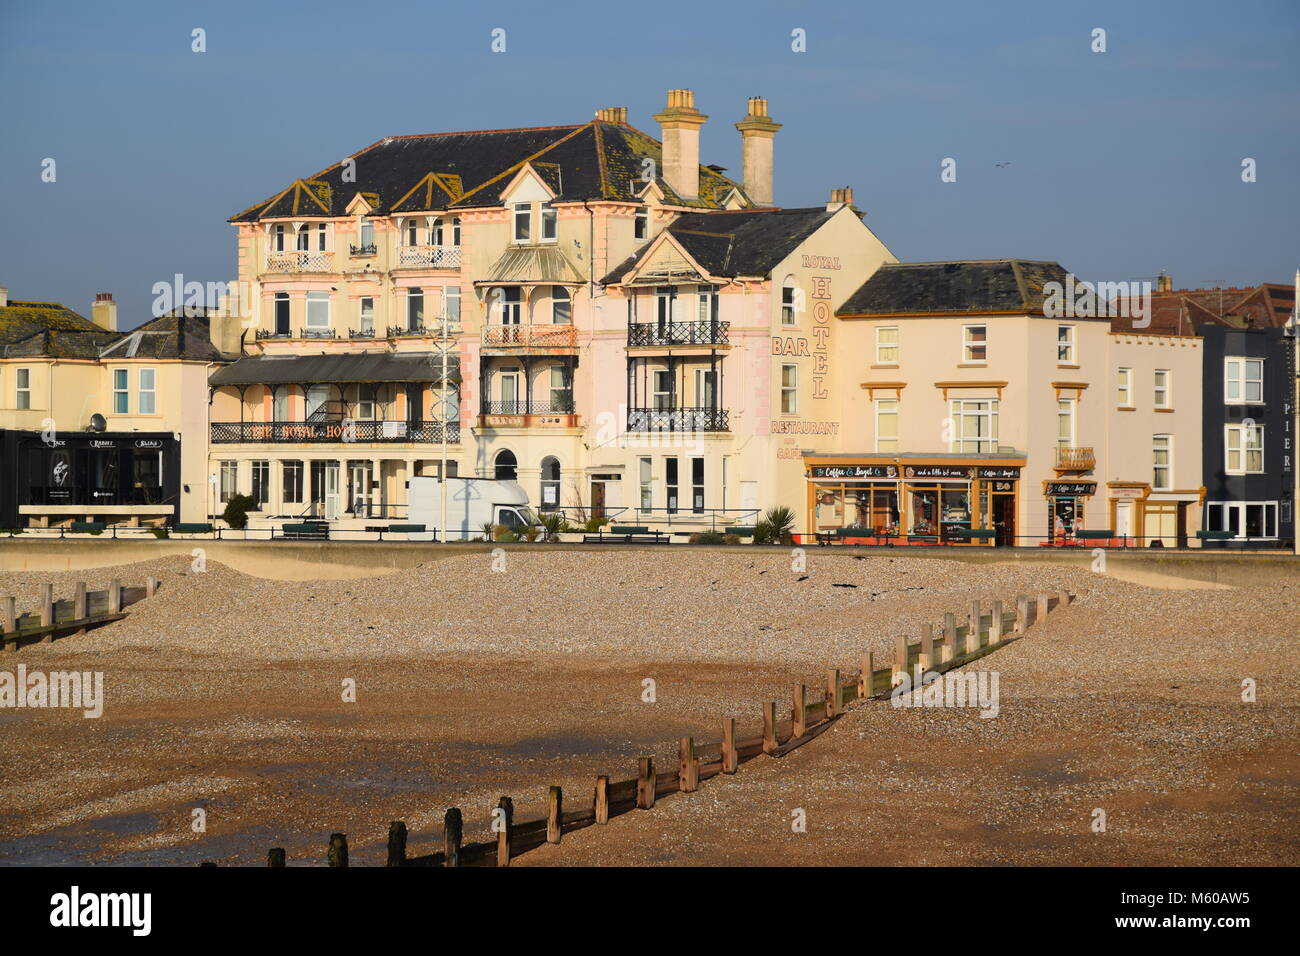 IN NEED OF TLC - THE ROYAL HOTEL, AND 'THE COFFEE CORNER' CAFE, BOGNOR REGIS, SEEN FROM THE BEACH AT LOW - Stock Image